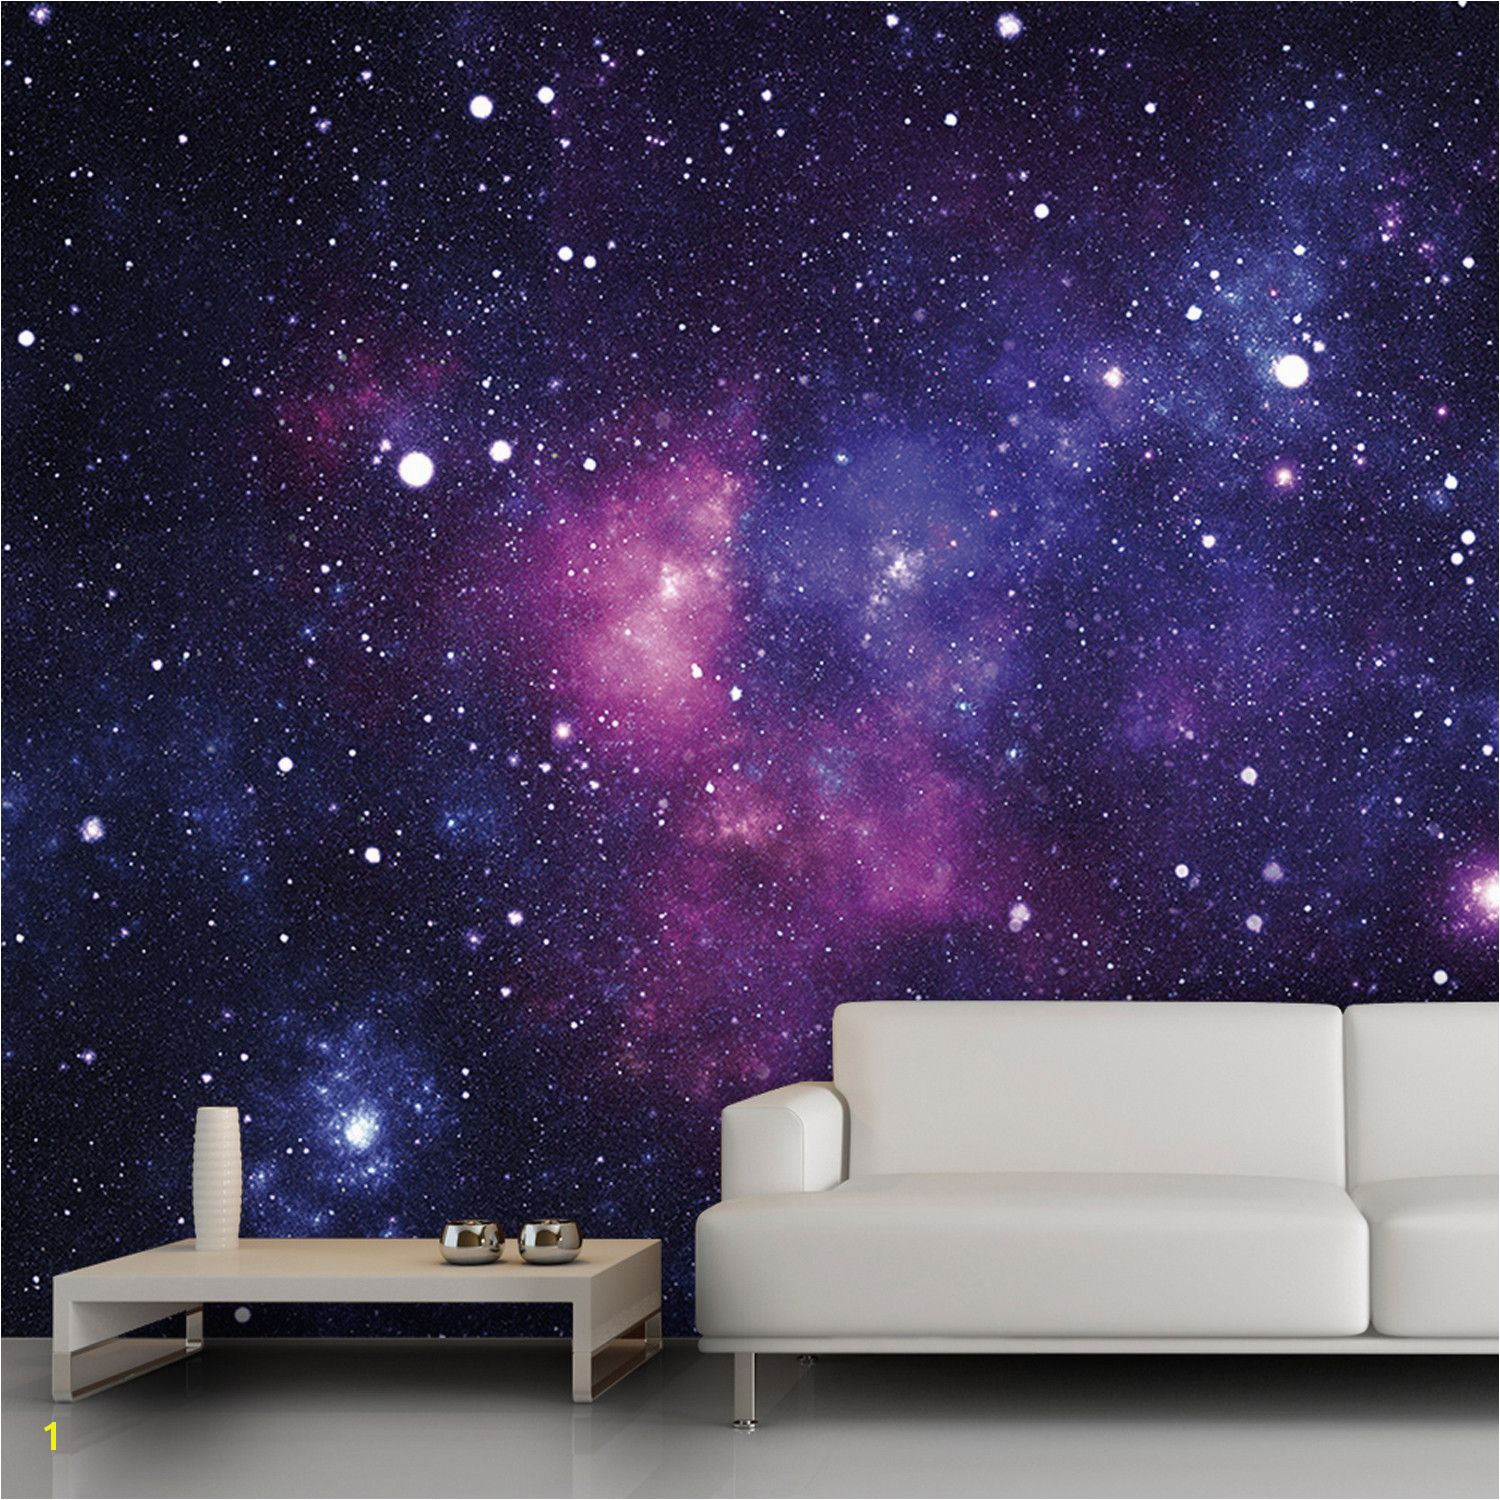 Galaxy wall mural 13 x9 $54 trying to think of cool wall decor for practice rooms and or hang space tied in to songs Ziggy stardusk